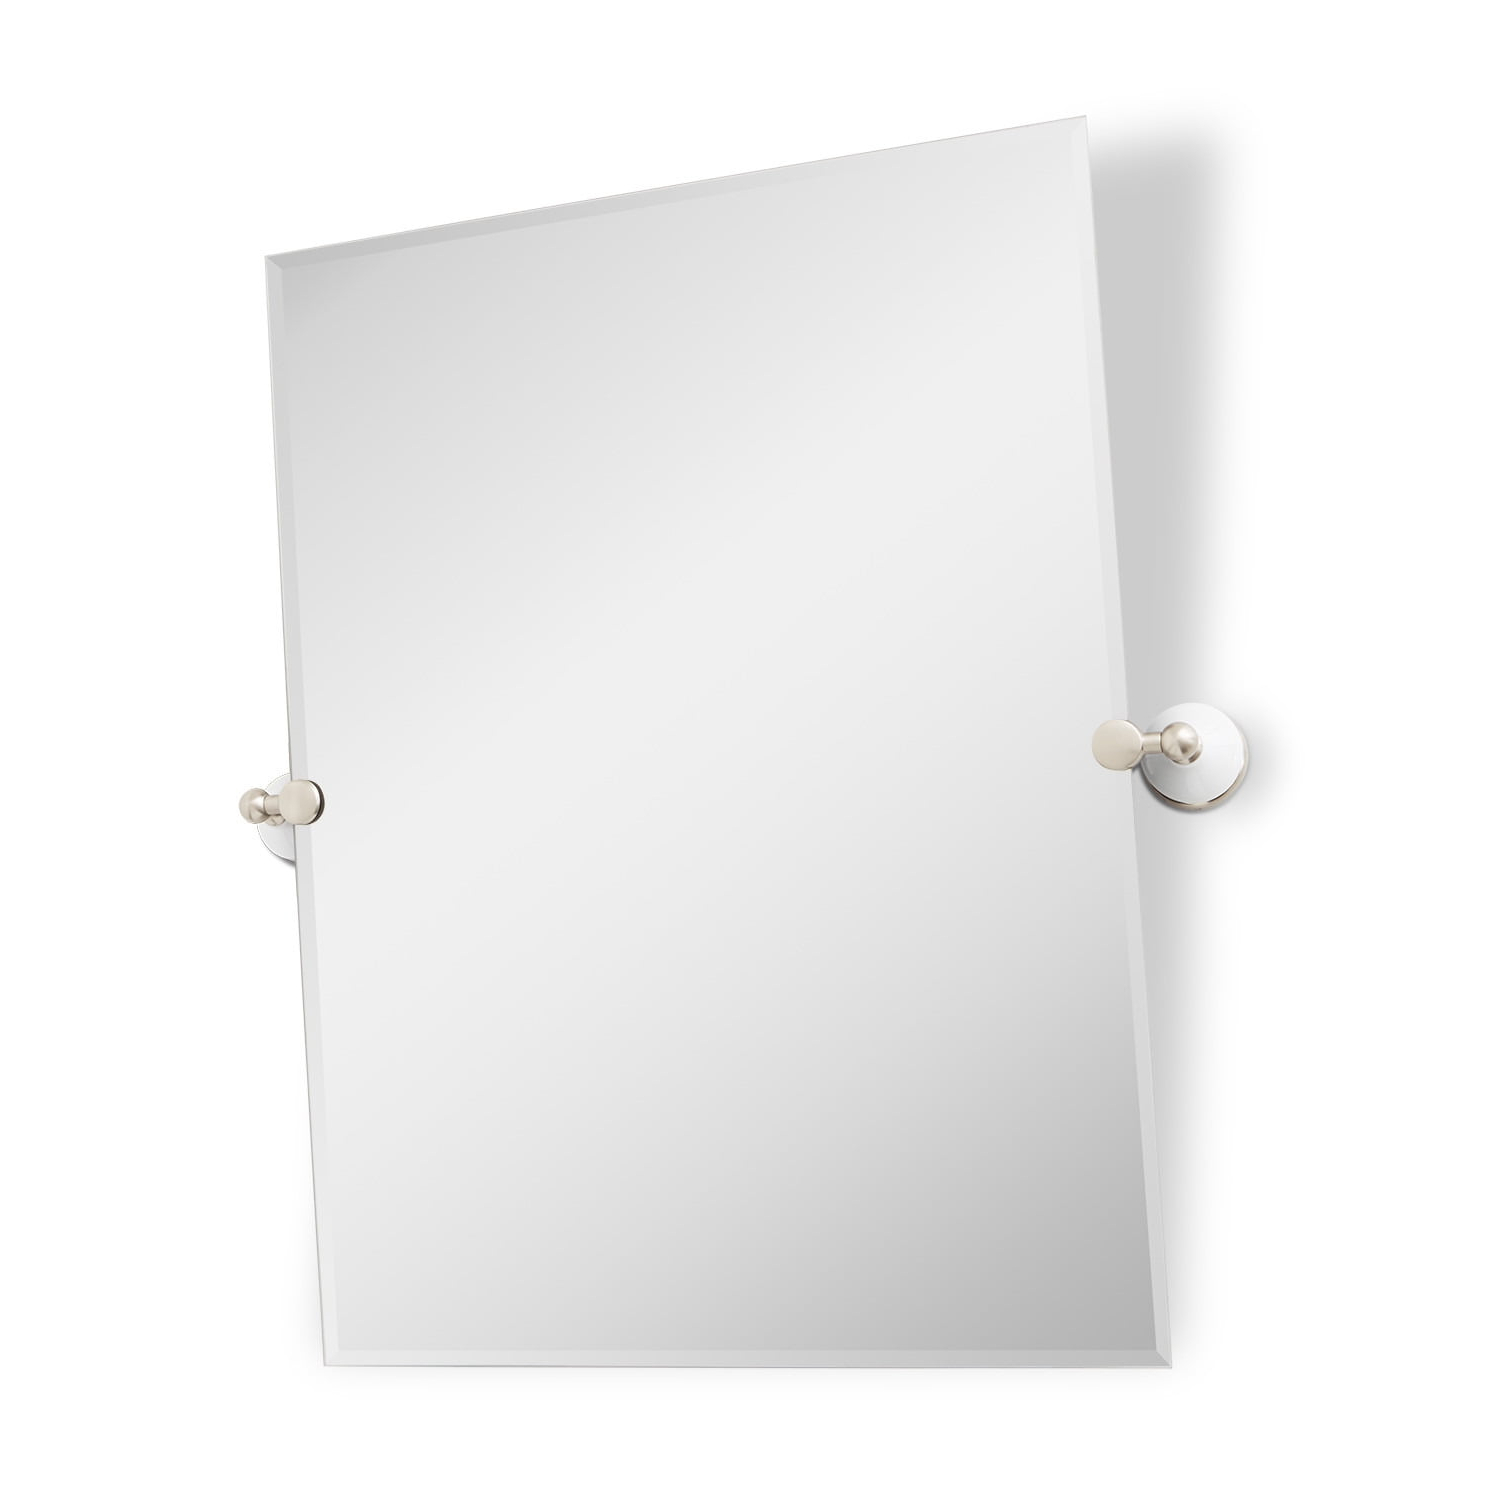 "Preferred Brushed Nickel Wall Mirrors For Bathroom Inside 29"" Houston Rectangular Tilting Mirror (View 18 of 20)"